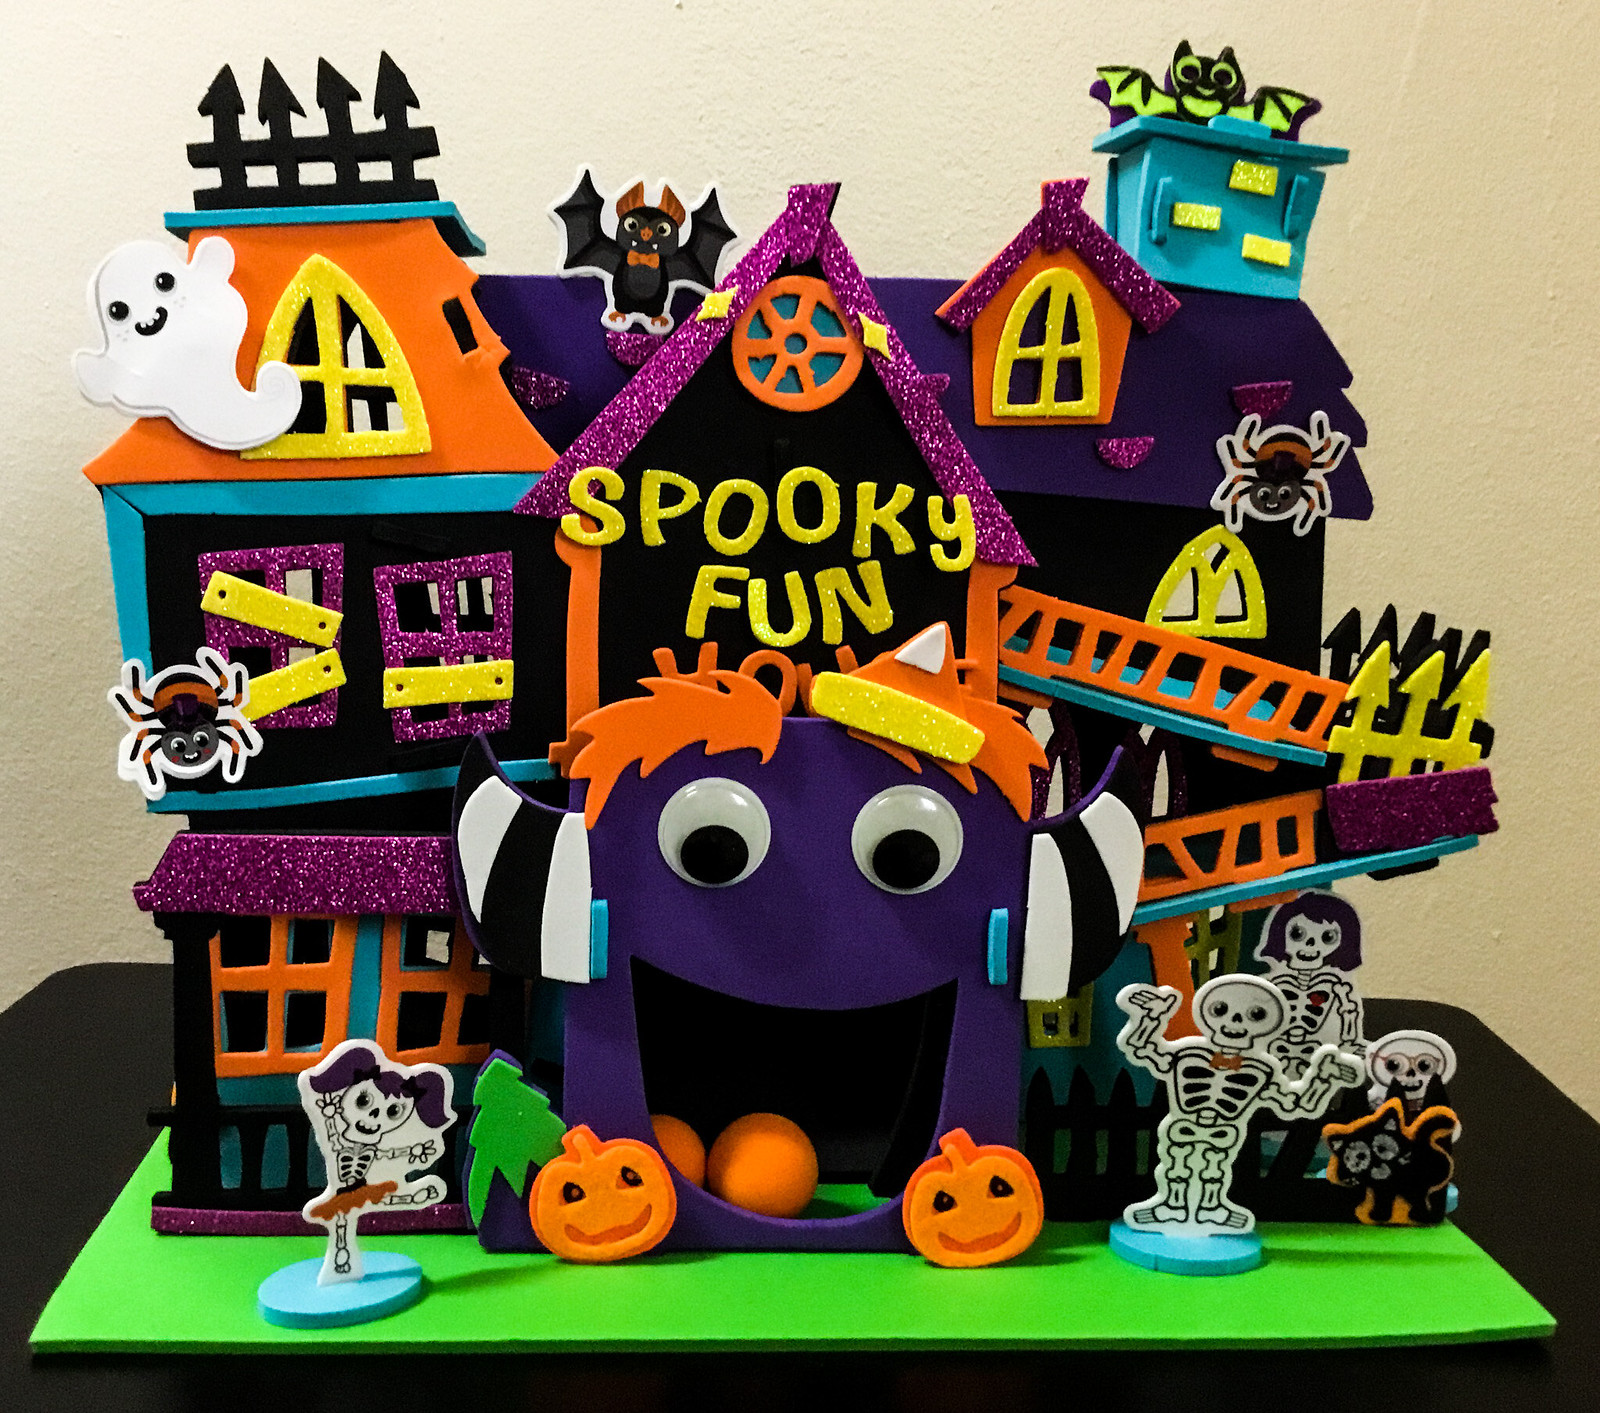 Spooky Fun House by Creatology